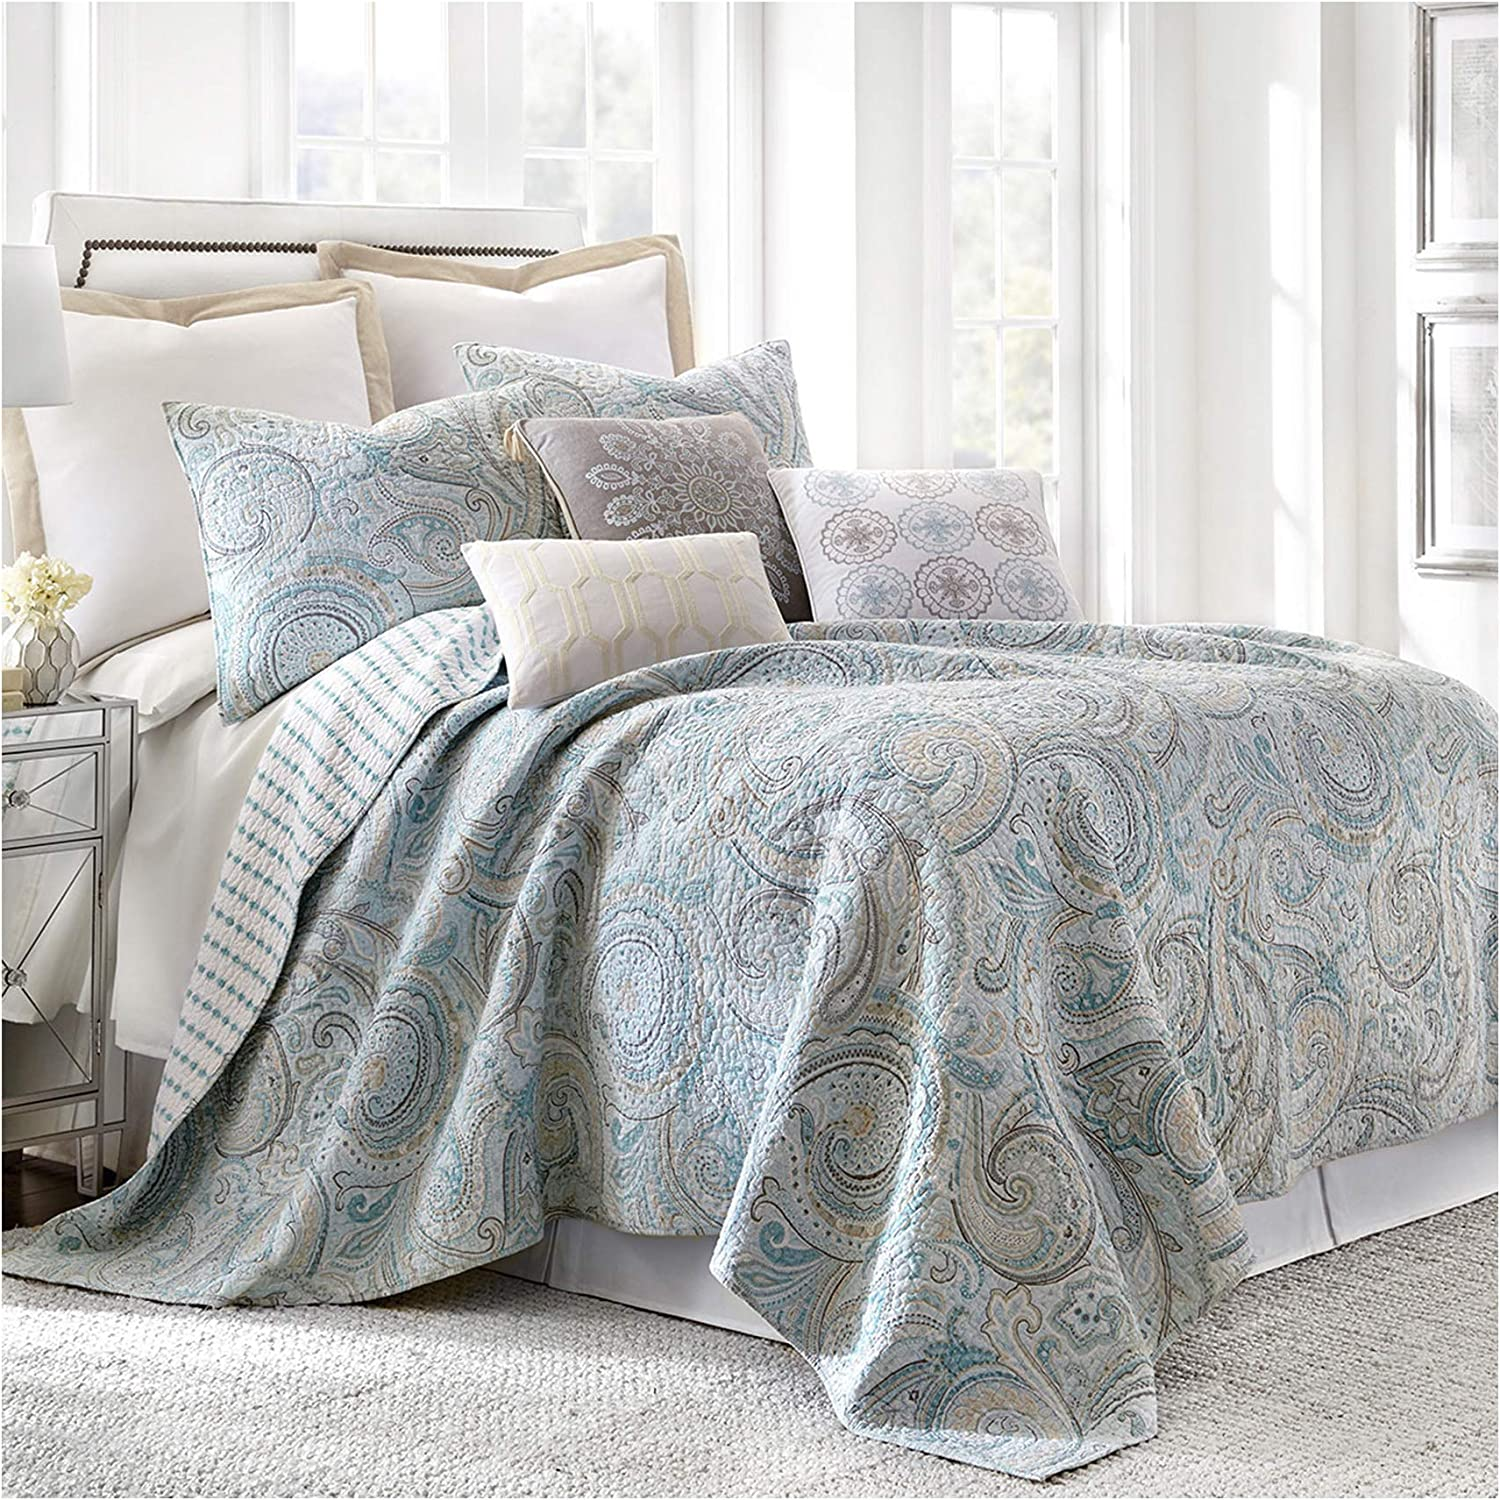 Amazon Com Levtex Home Spruce Spa Quilt Set King Two Pillow Shams Paisley Pattern In Soft And Tan Hues Size 106 X 92